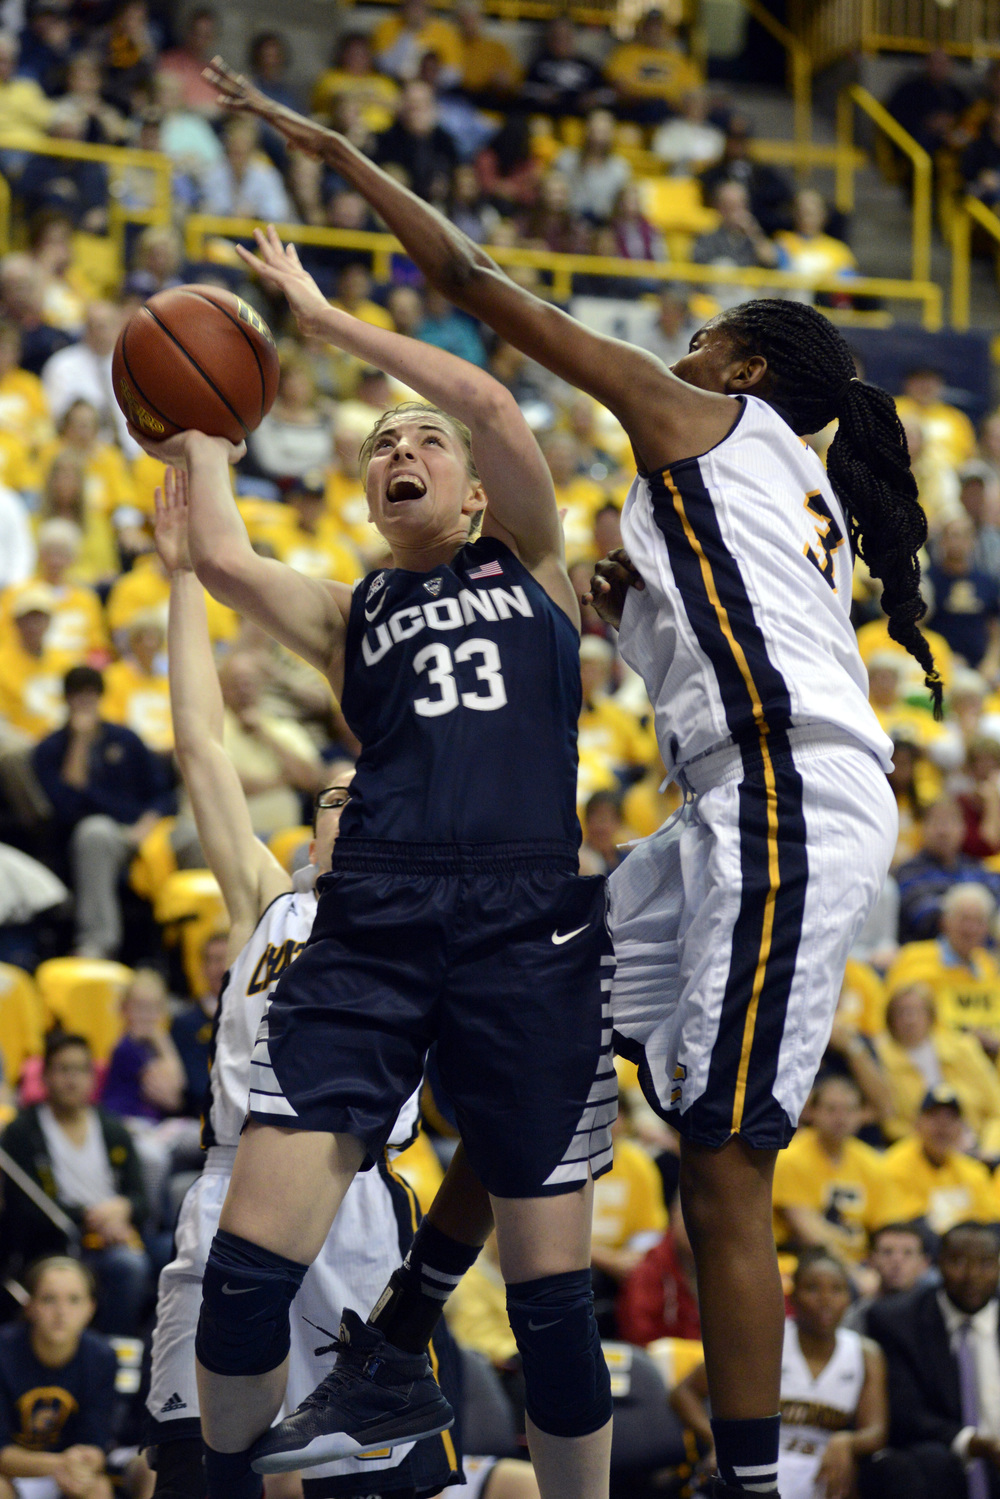 Connecticut guard Katie Lou Samuelson (33) shoots as Chattanooga's Jasmine Joyner (3) defends in the first half of an NCAA college basketball game Monday, Nov. 30, 2015, in Chattanooga, Tenn. (Billy Weeks/AP)